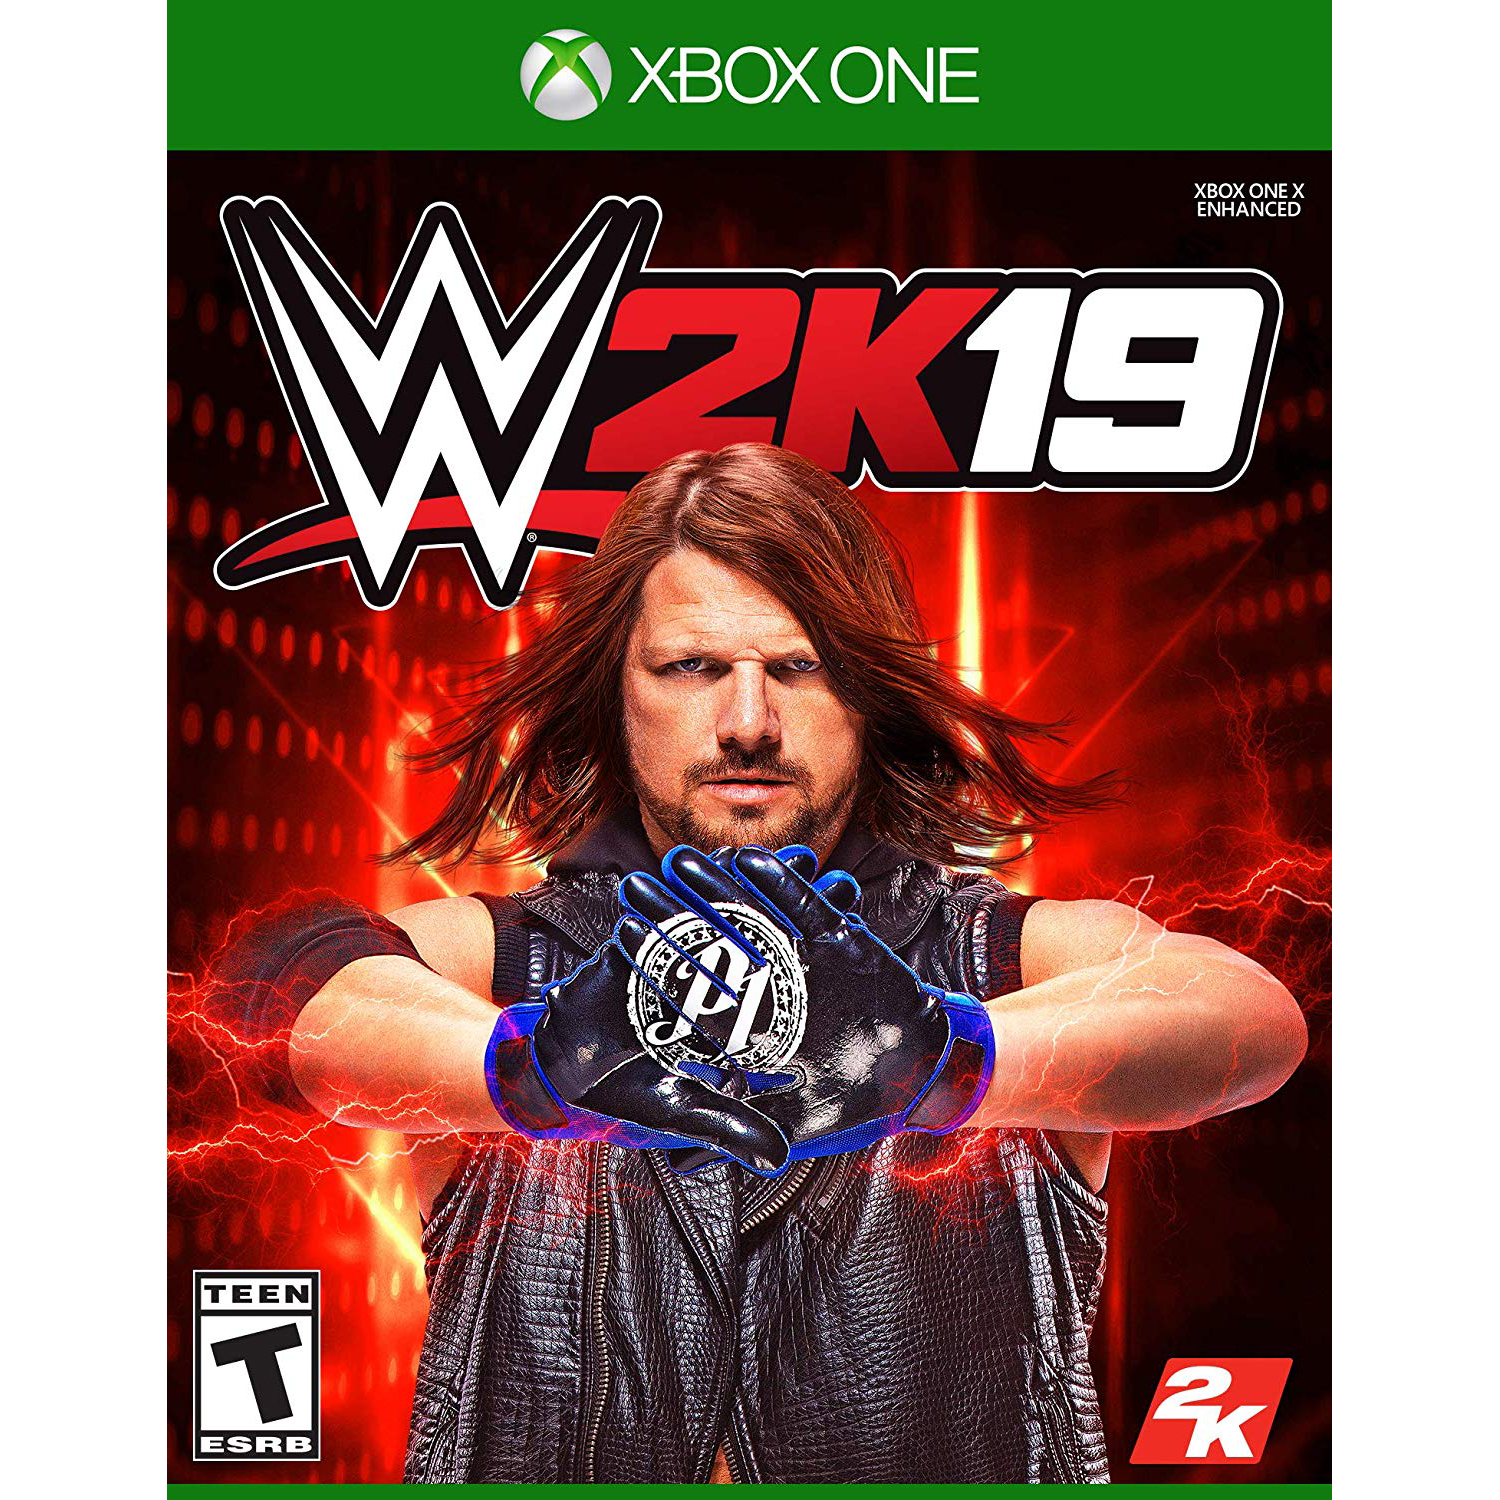 Details about Xbox One WWE-2K19 Video Game Standard Edition